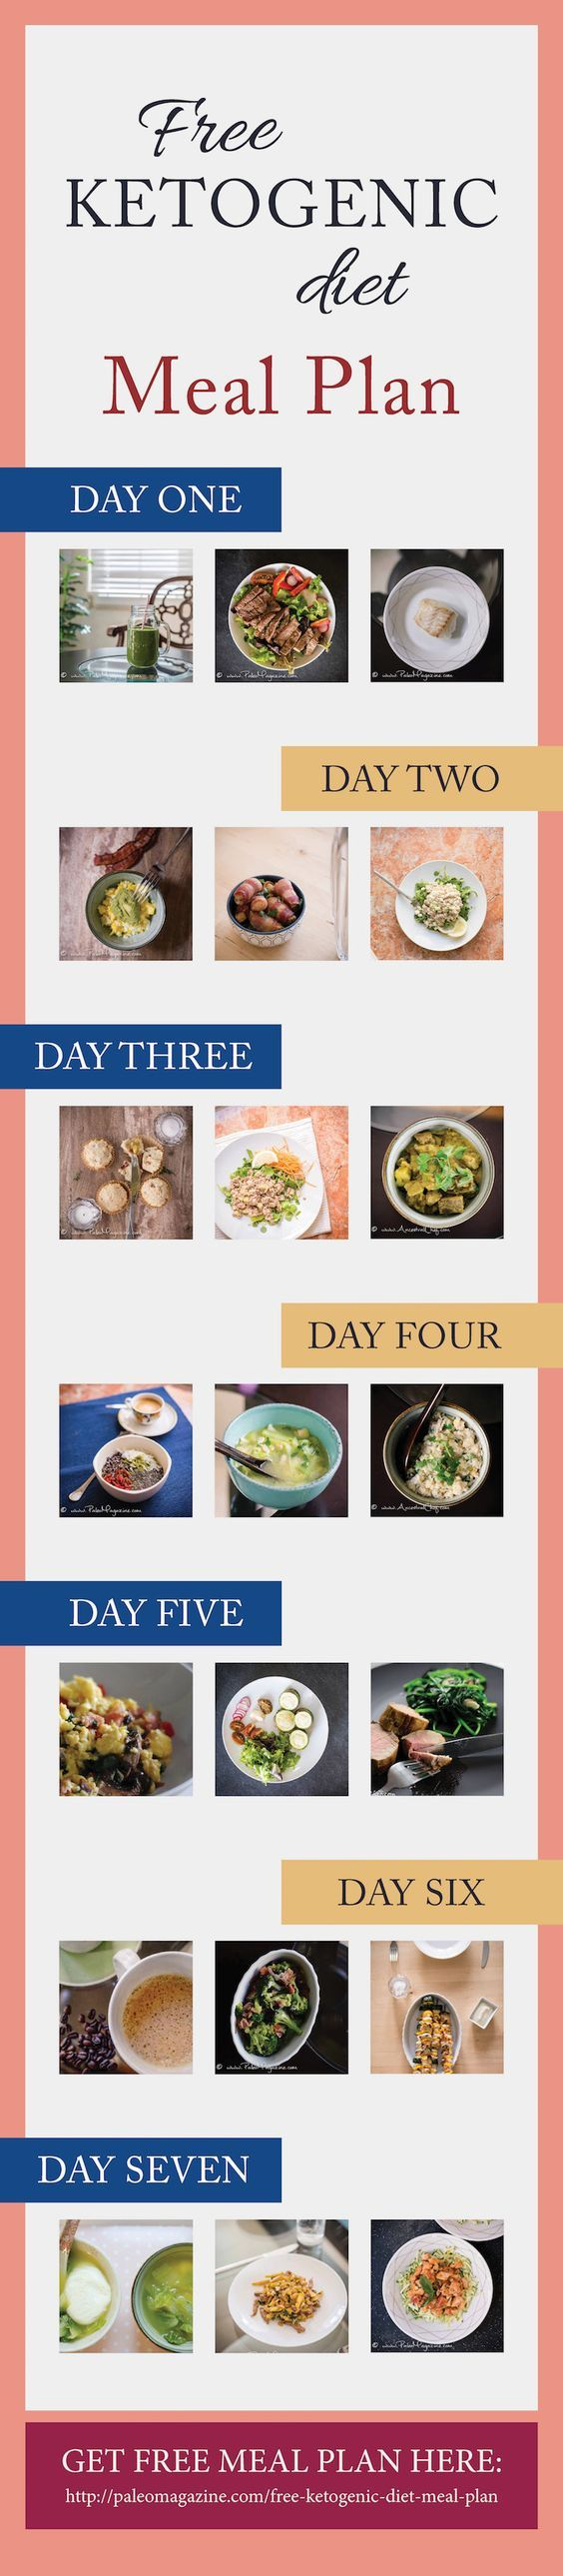 Blue apron keto